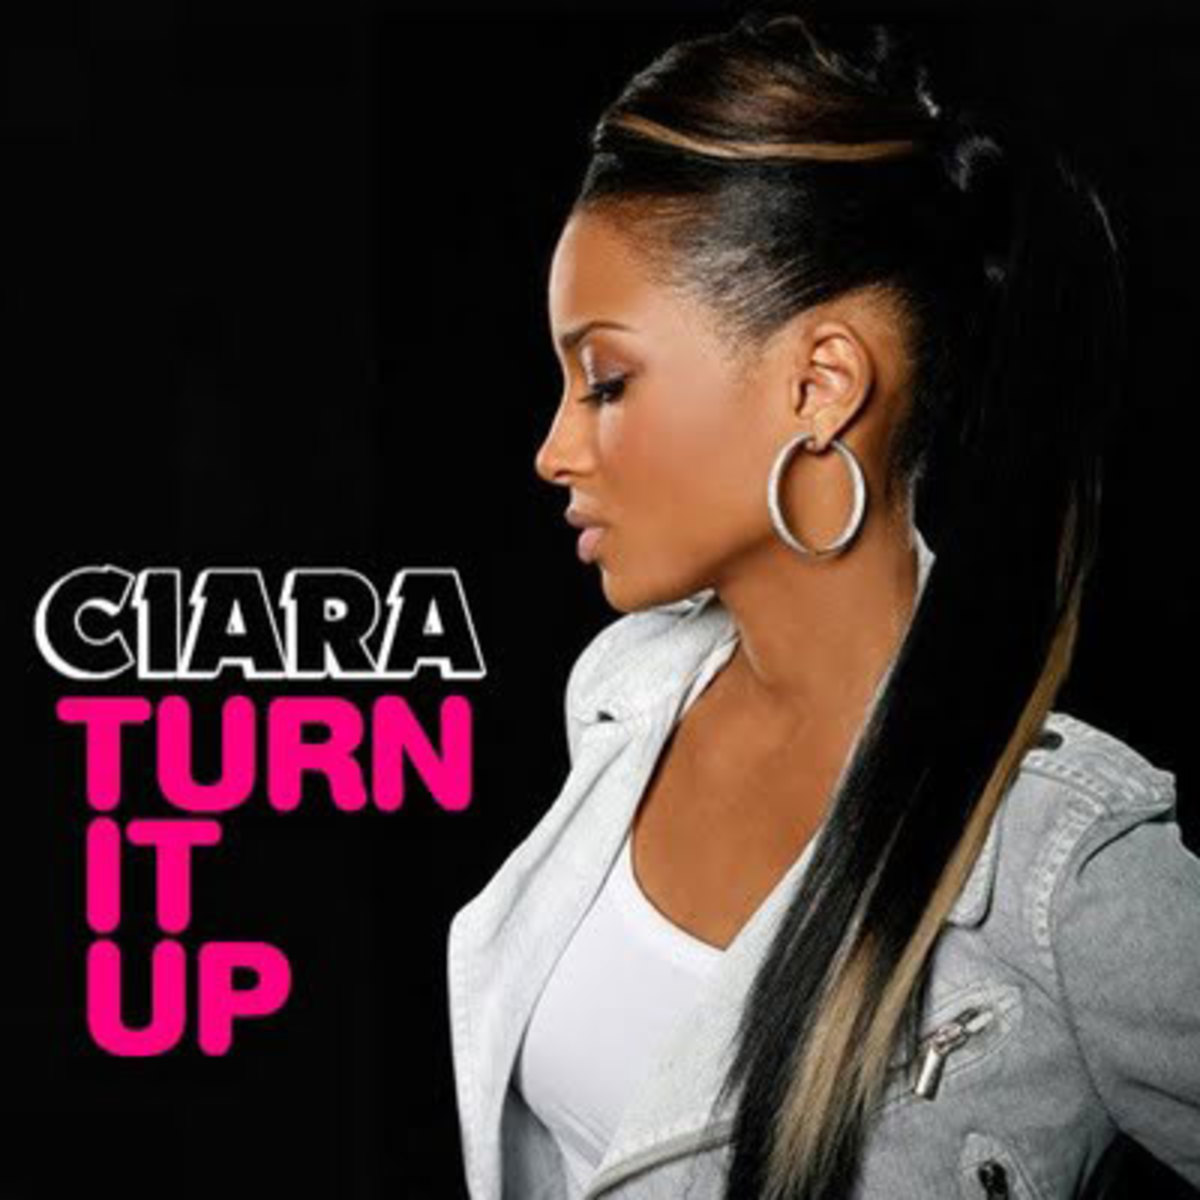 ciara-turnitup.jpg